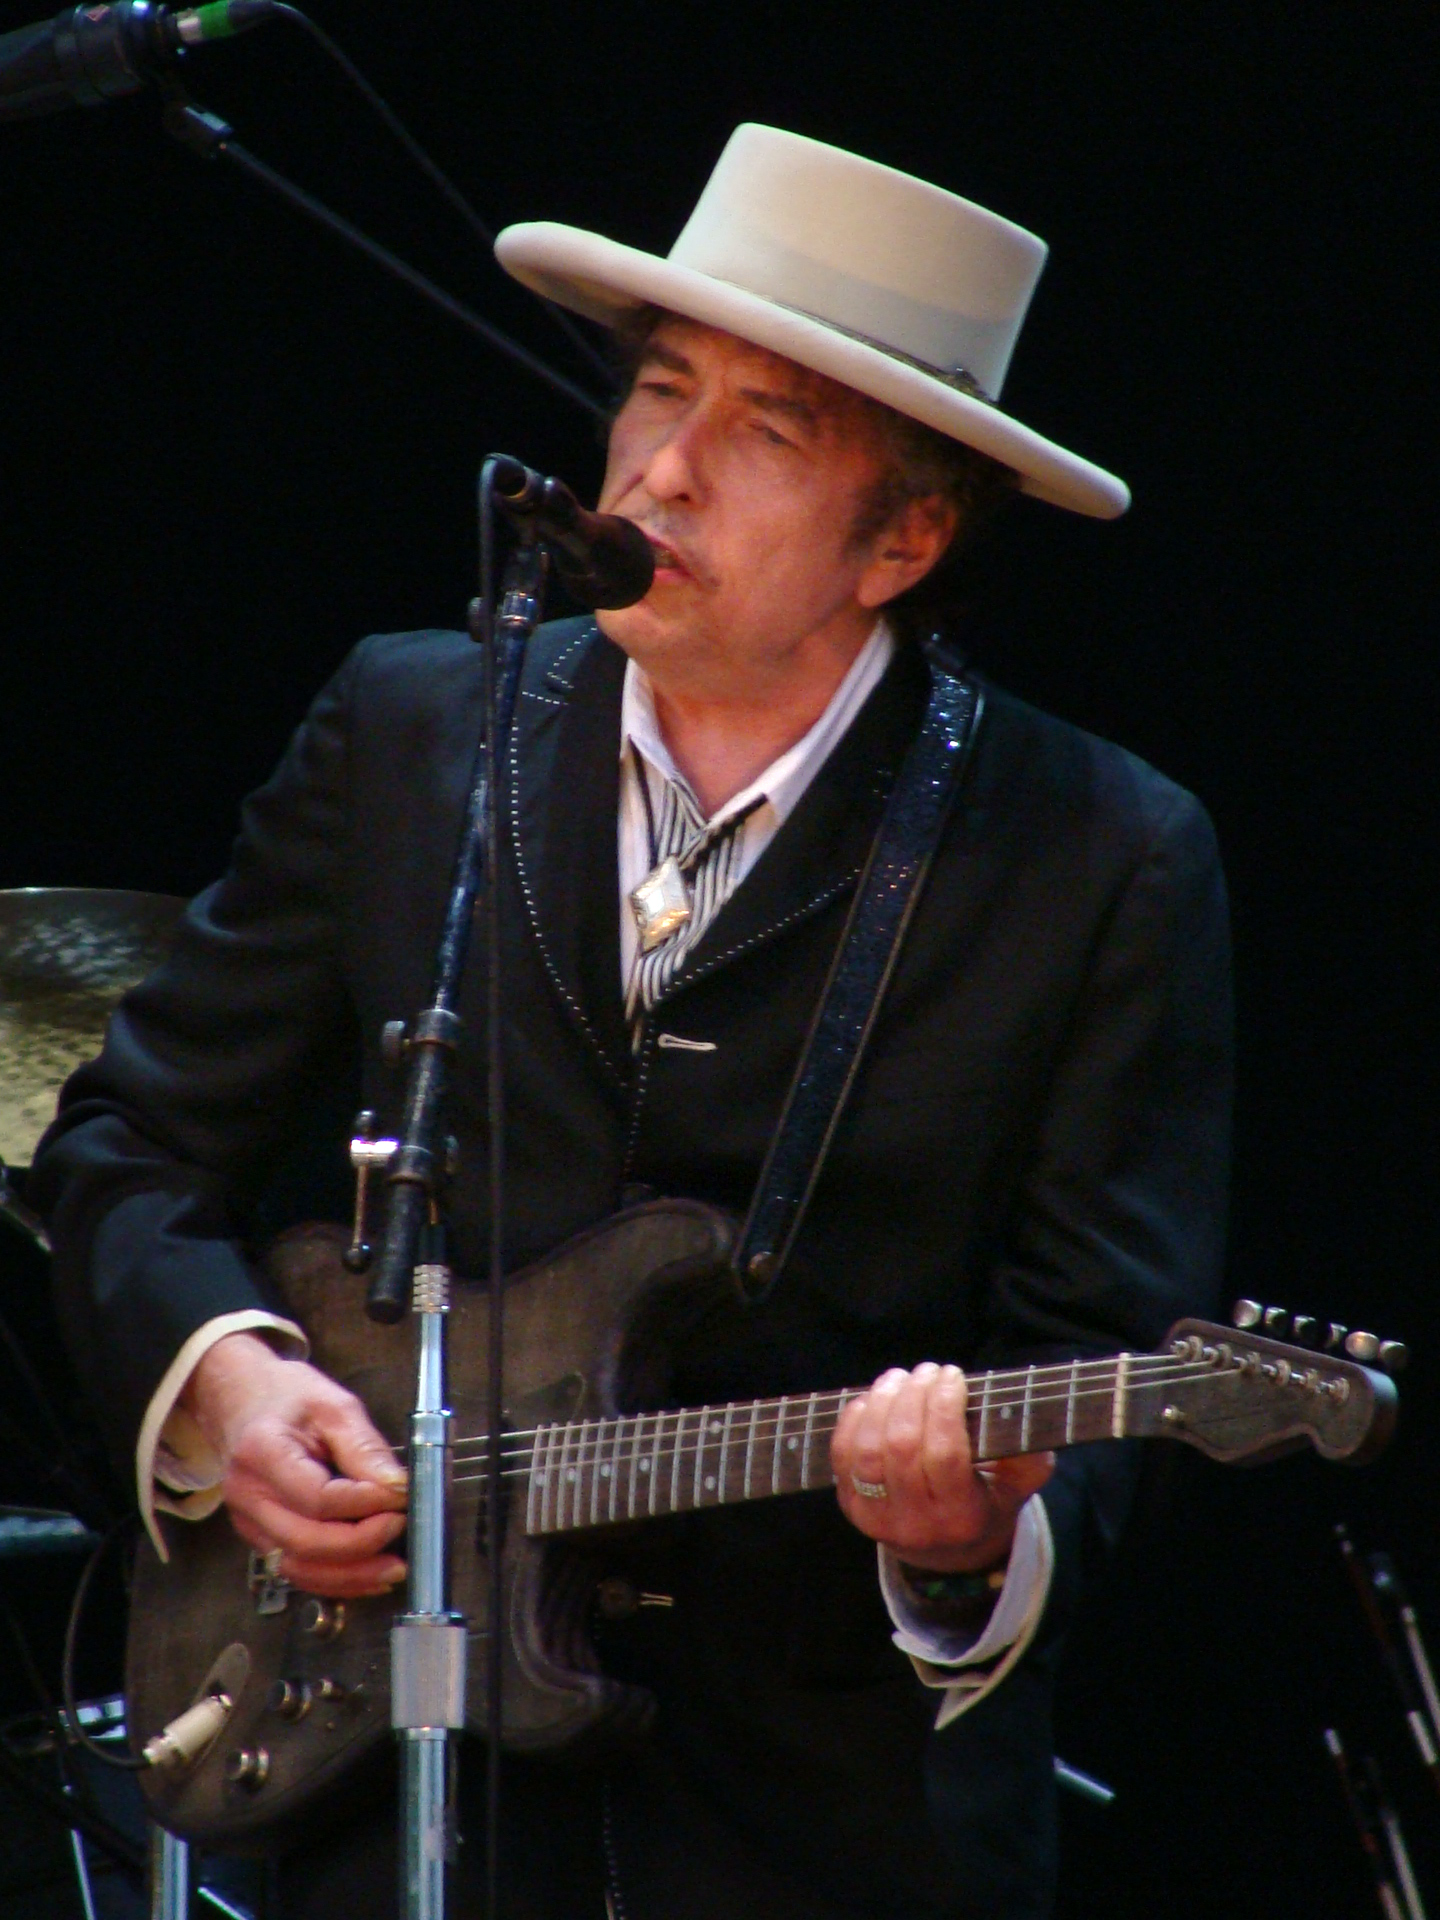 biography bob dylan In celebration of bob dylan's 74th birthday, journalist dennis mcdougal discusses his book dylan: the biography find out how dylan transformed from a heroin addict into one of the most.